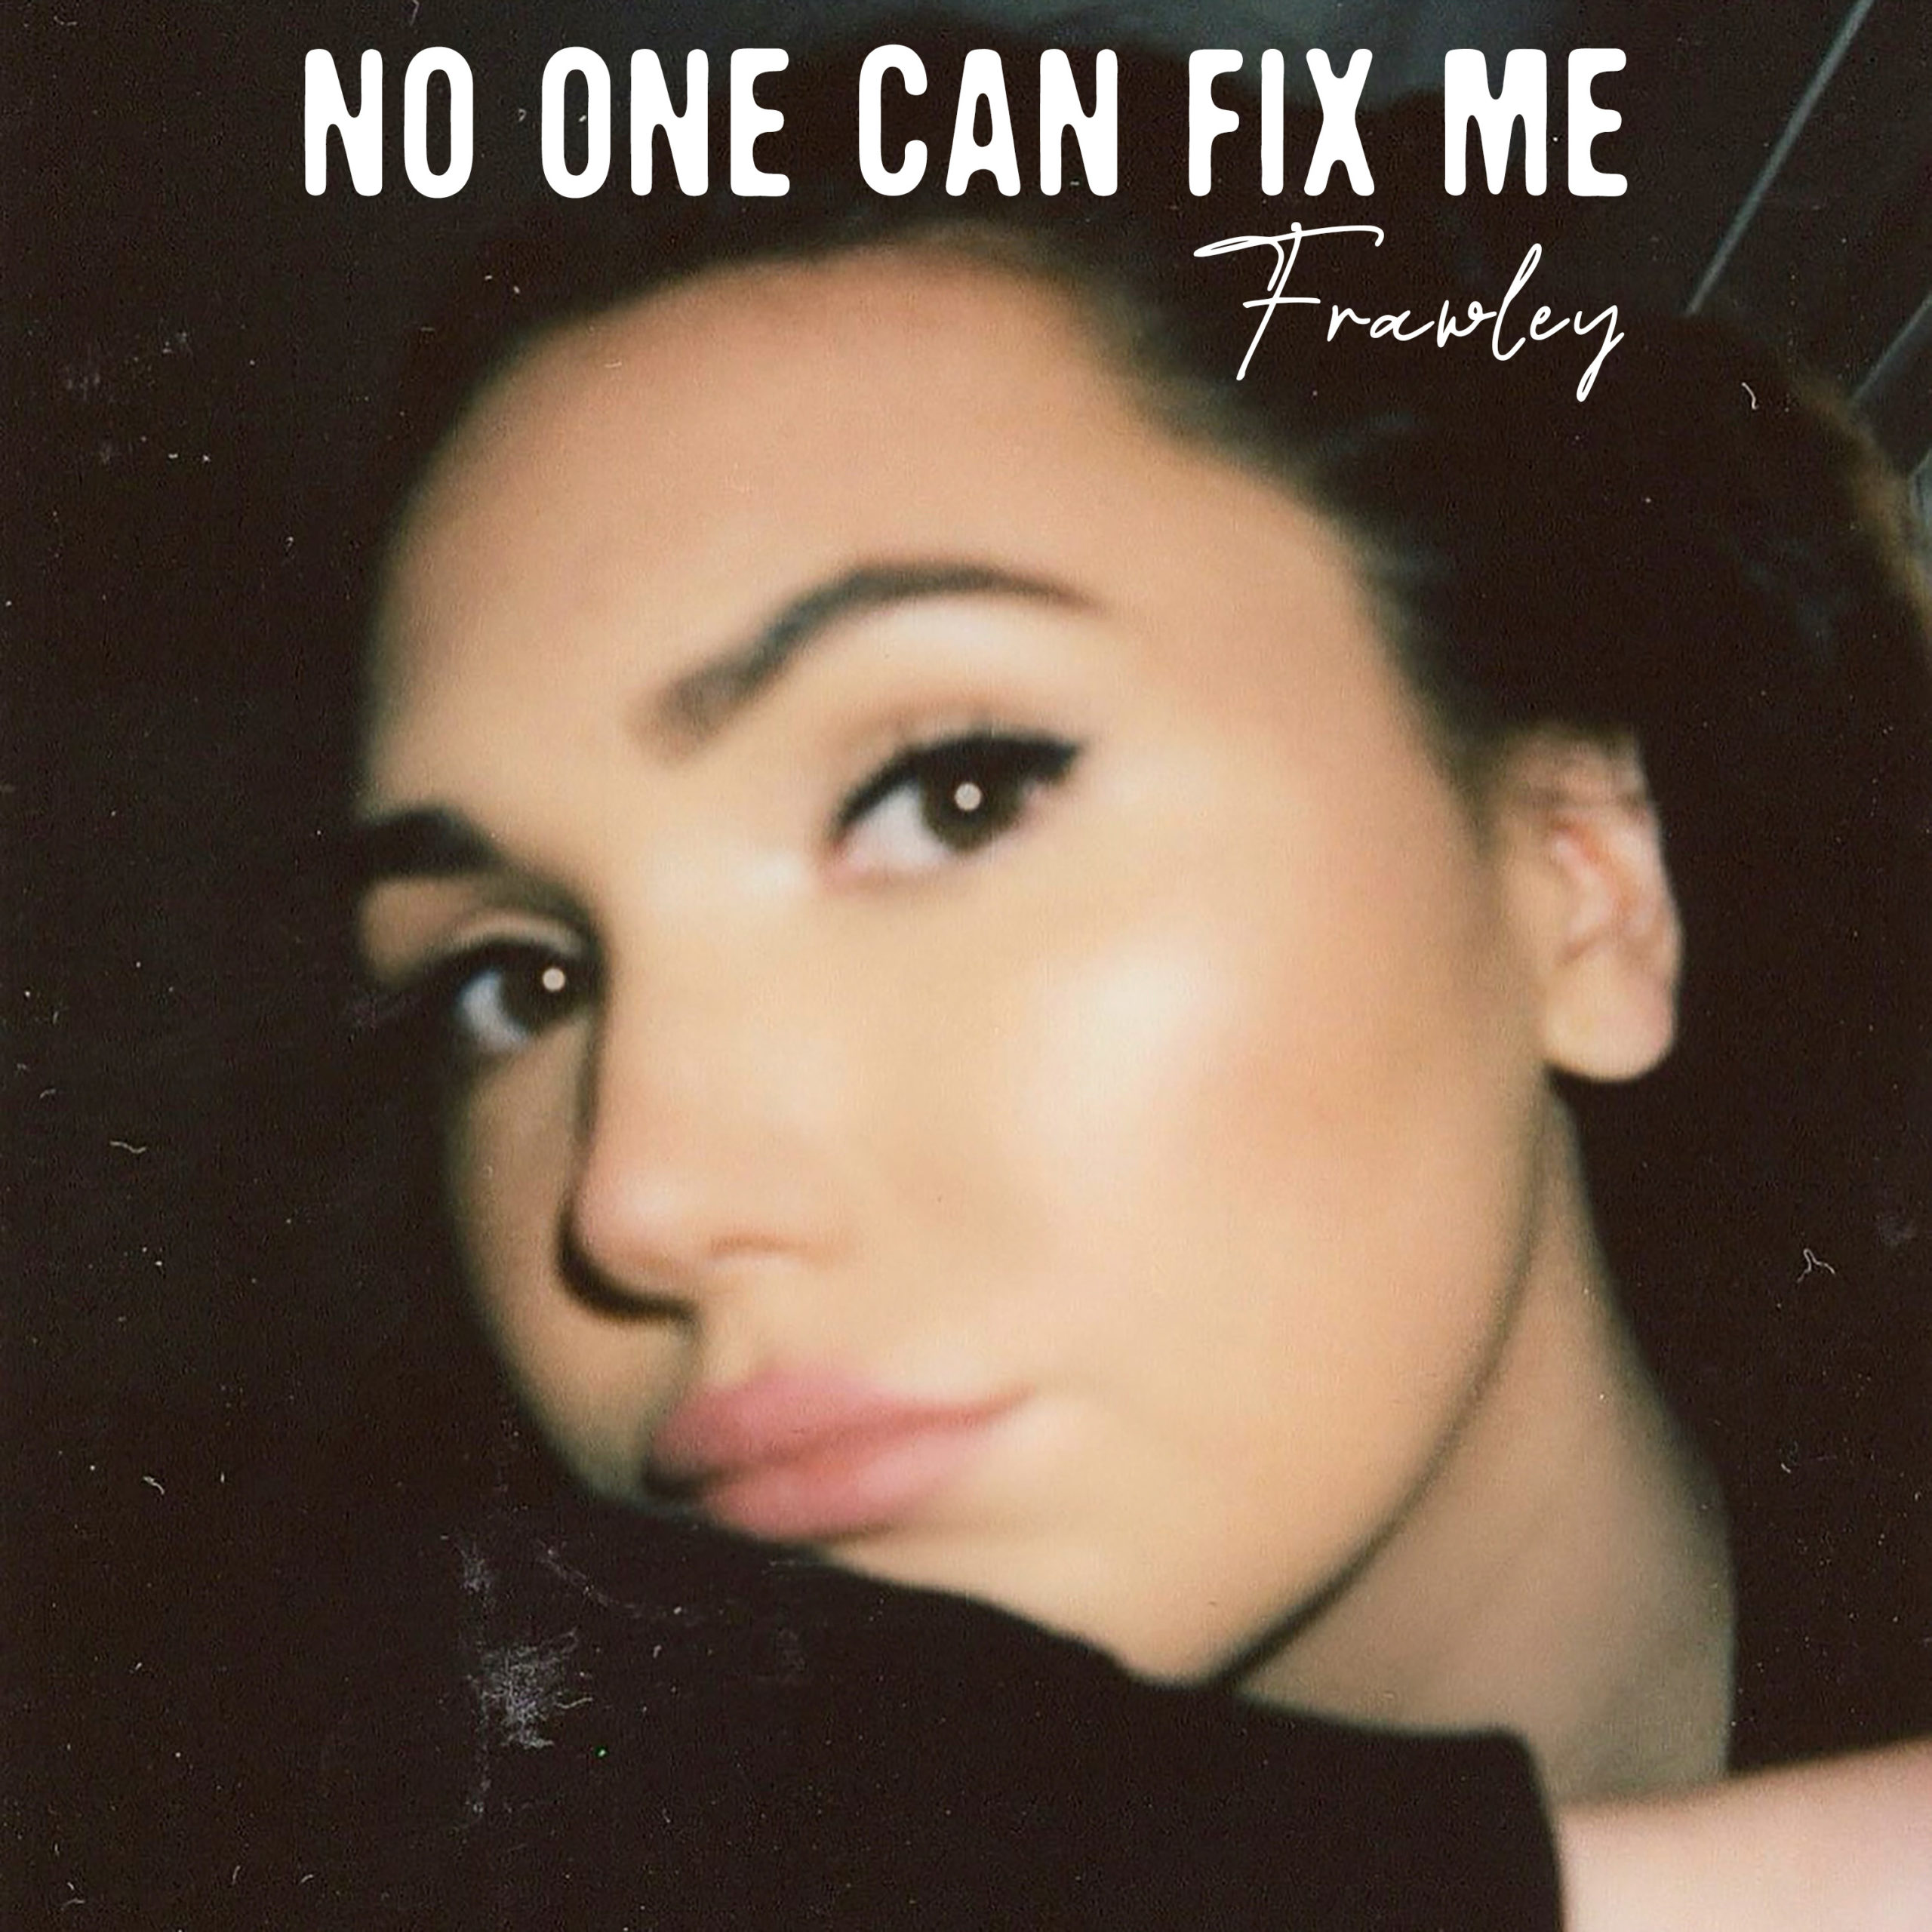 No One Can Fix Me